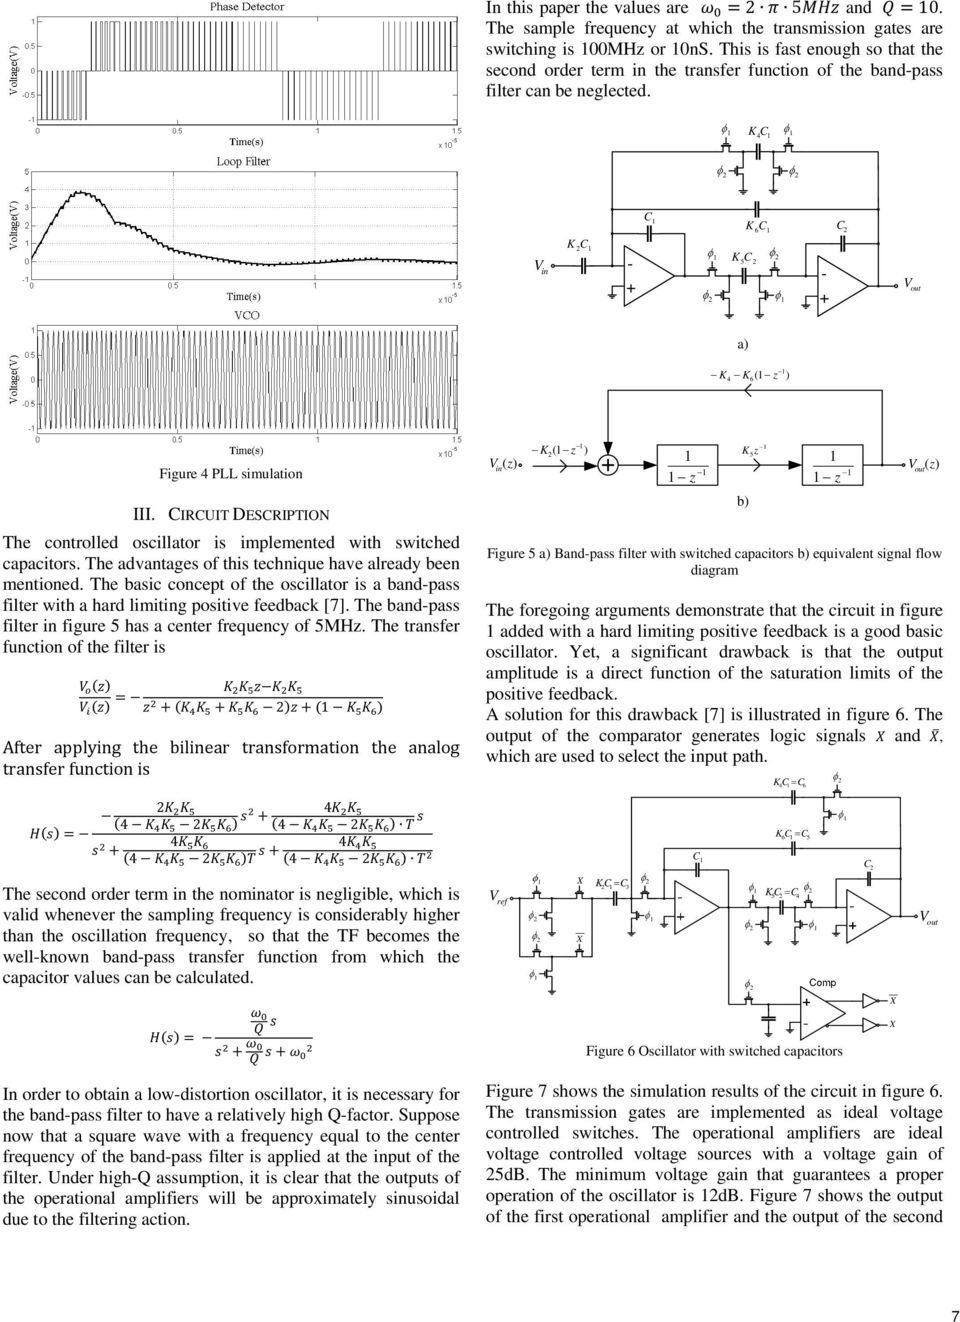 Master Of Science Msc In Engineering Technology Electronics Ict Trend Lm7805 Datasheet Download Circuit Diagram From Seekiccom 1 K 4 C 2 6 C2 V